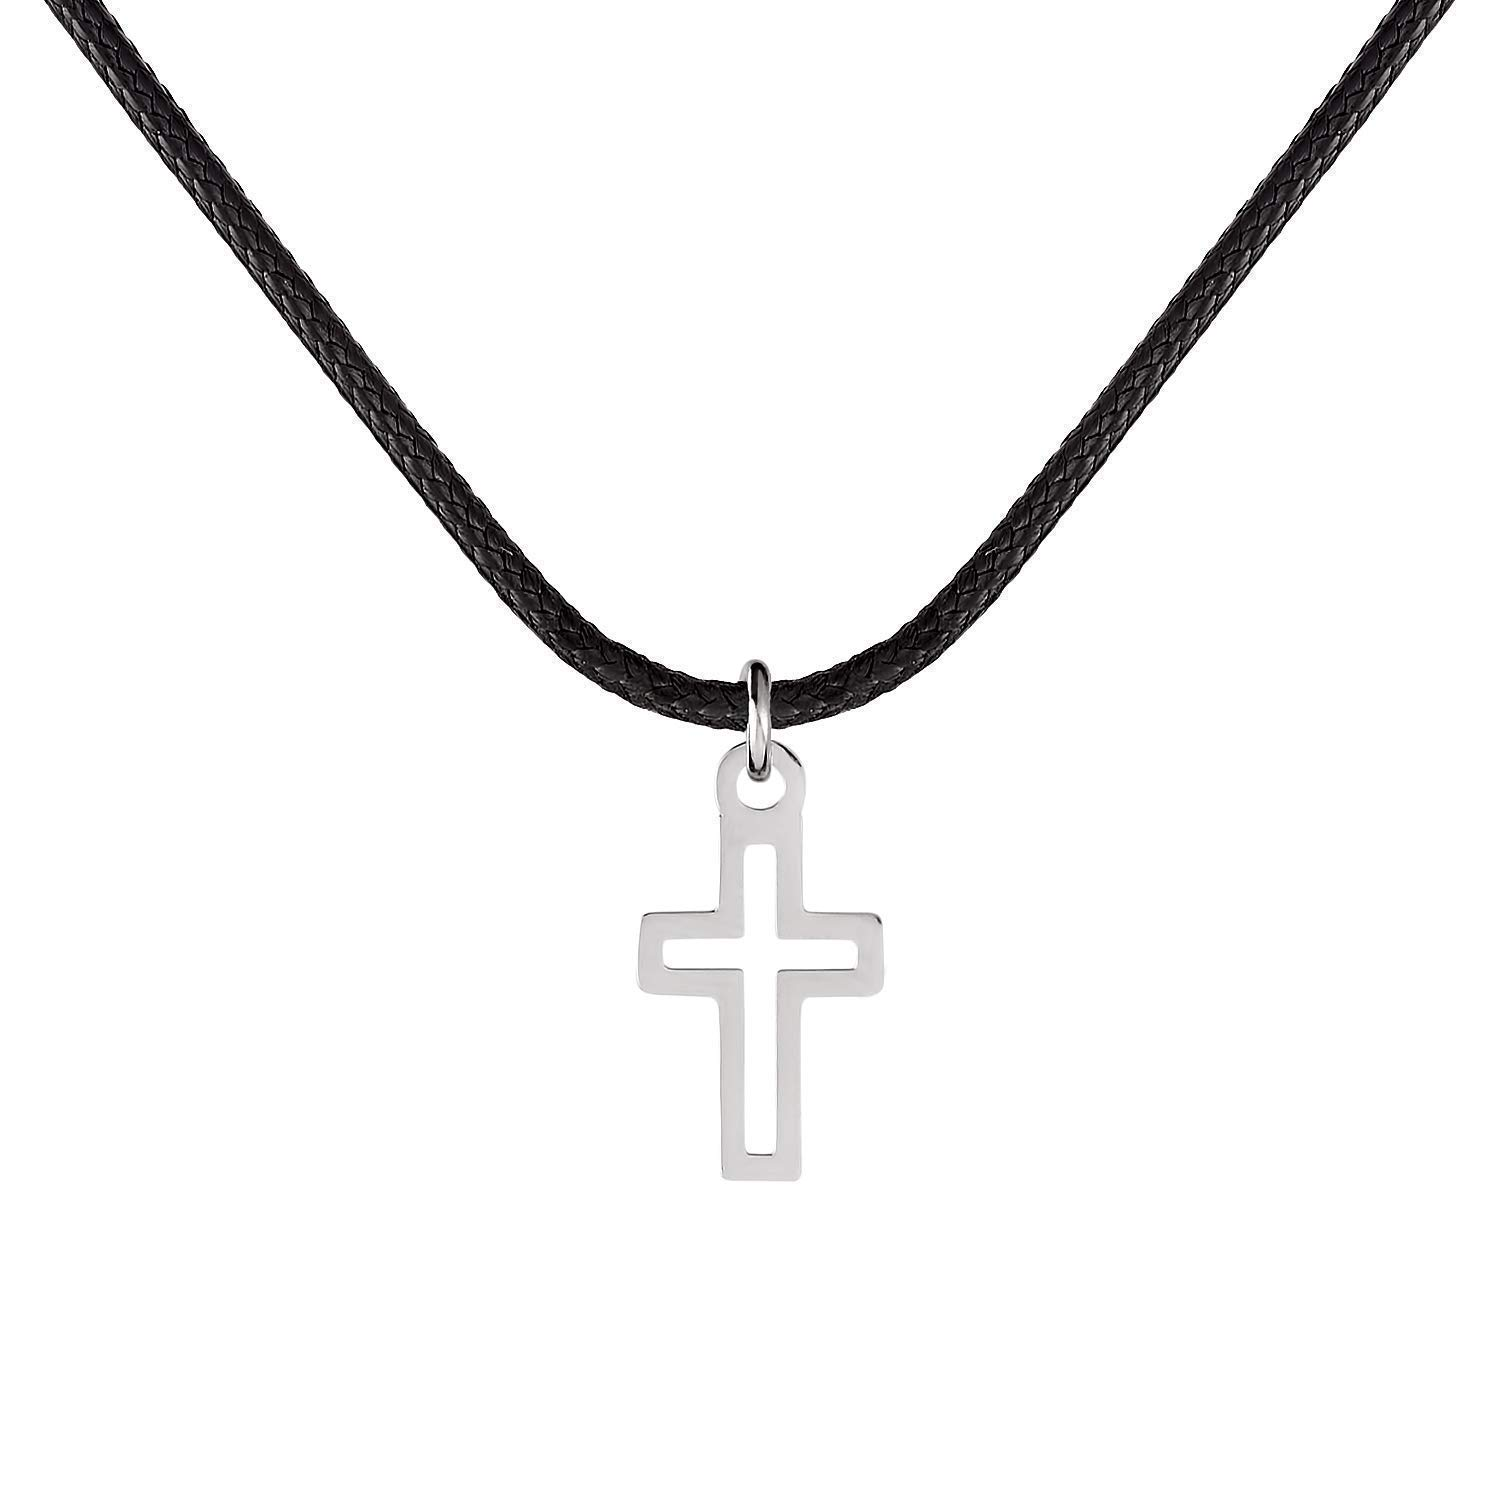 Handmade Black Fabric Necklace For Max 77% OFF Set Men Stainless Steel Free shipping anywhere in the nation With